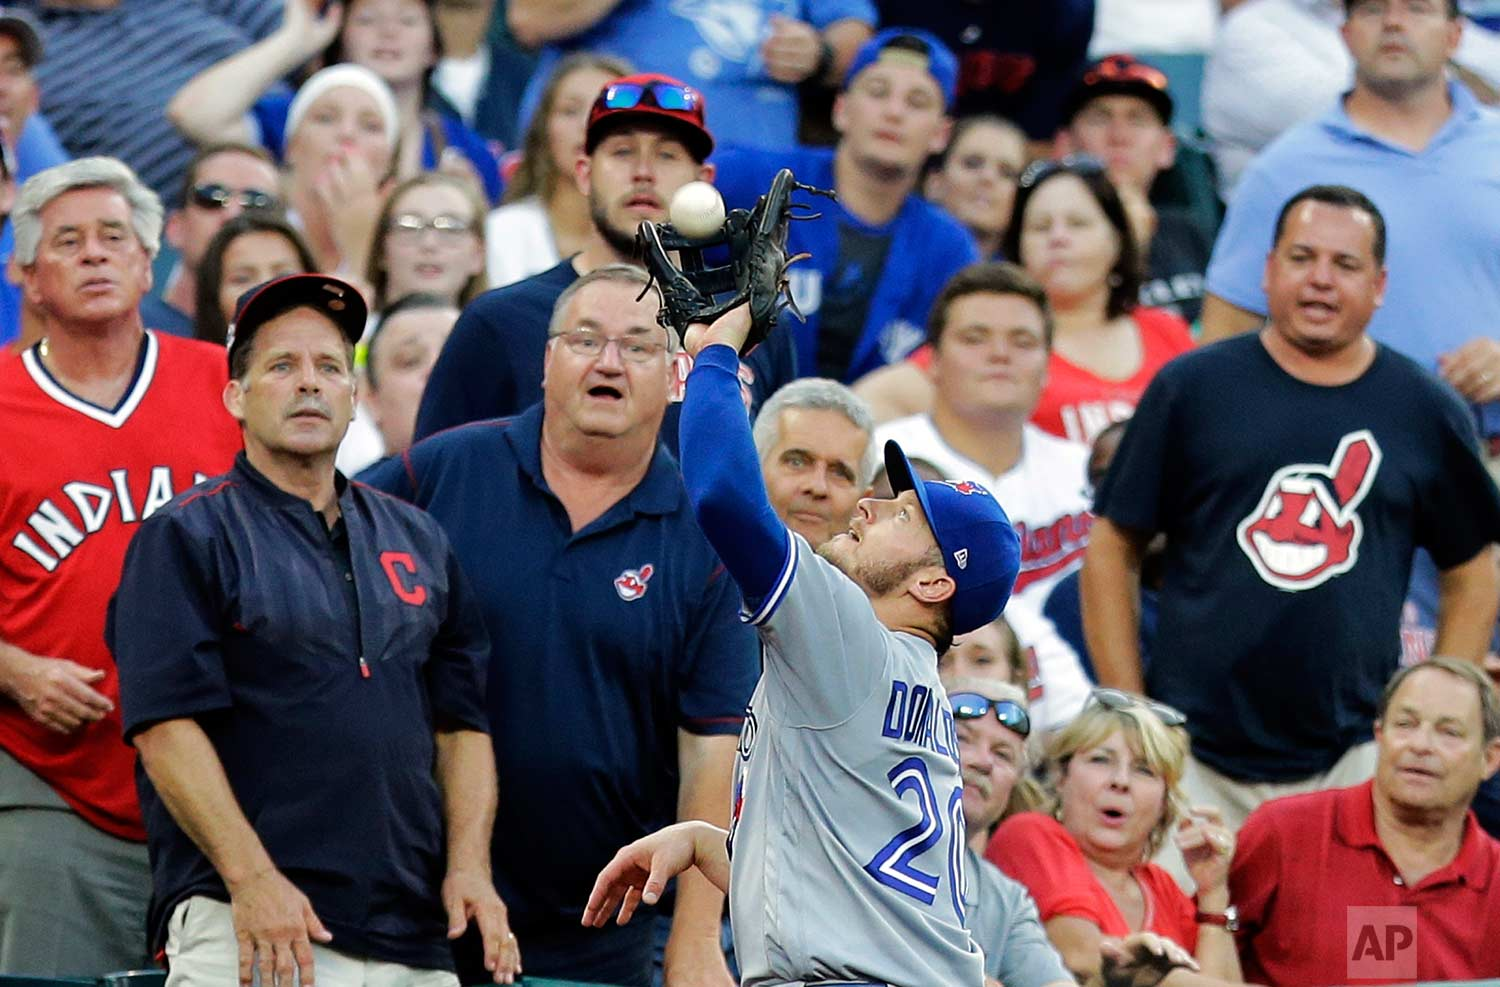 Toronto Blue Jays' Josh Donaldson (20) catches a foul ball by Cleveland Indians' Abraham Almonte in the fifth inning of a baseball game, Saturday, July 22, 2017, in Cleveland. (AP Photo/Tony Dejak)